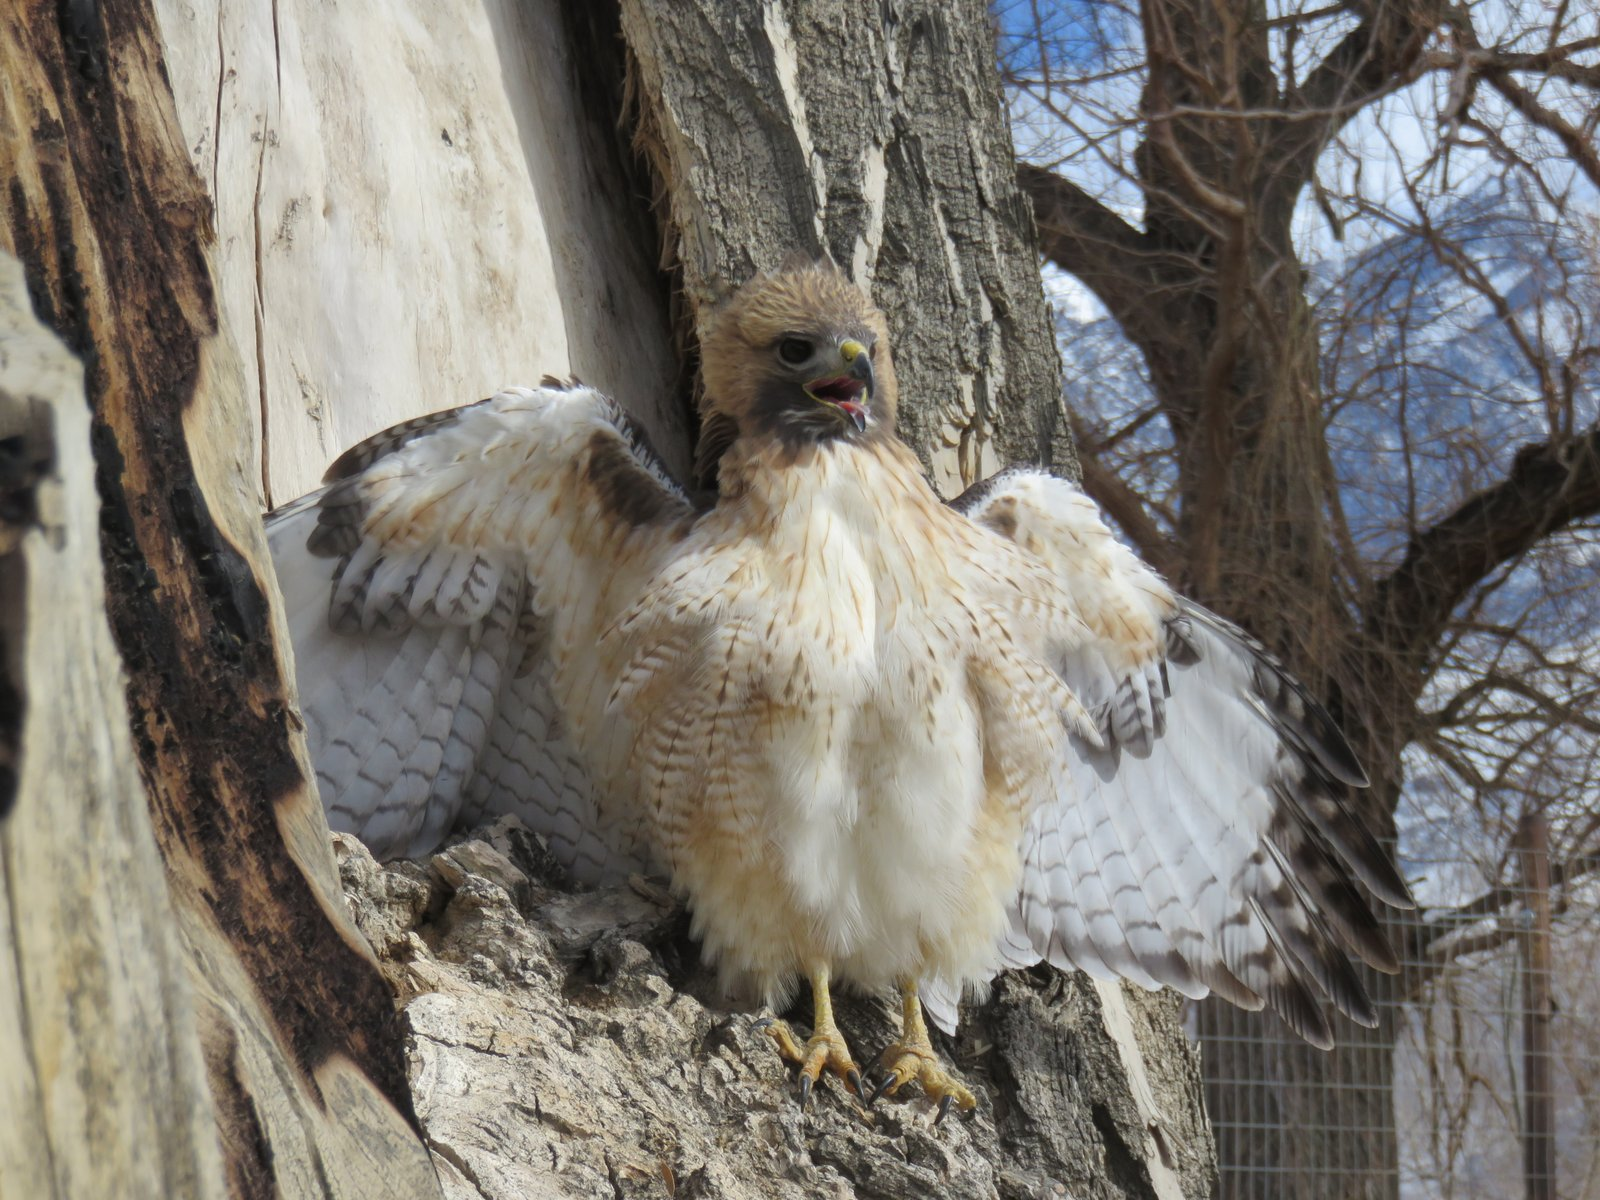 A fledgling red-tailed hawk.